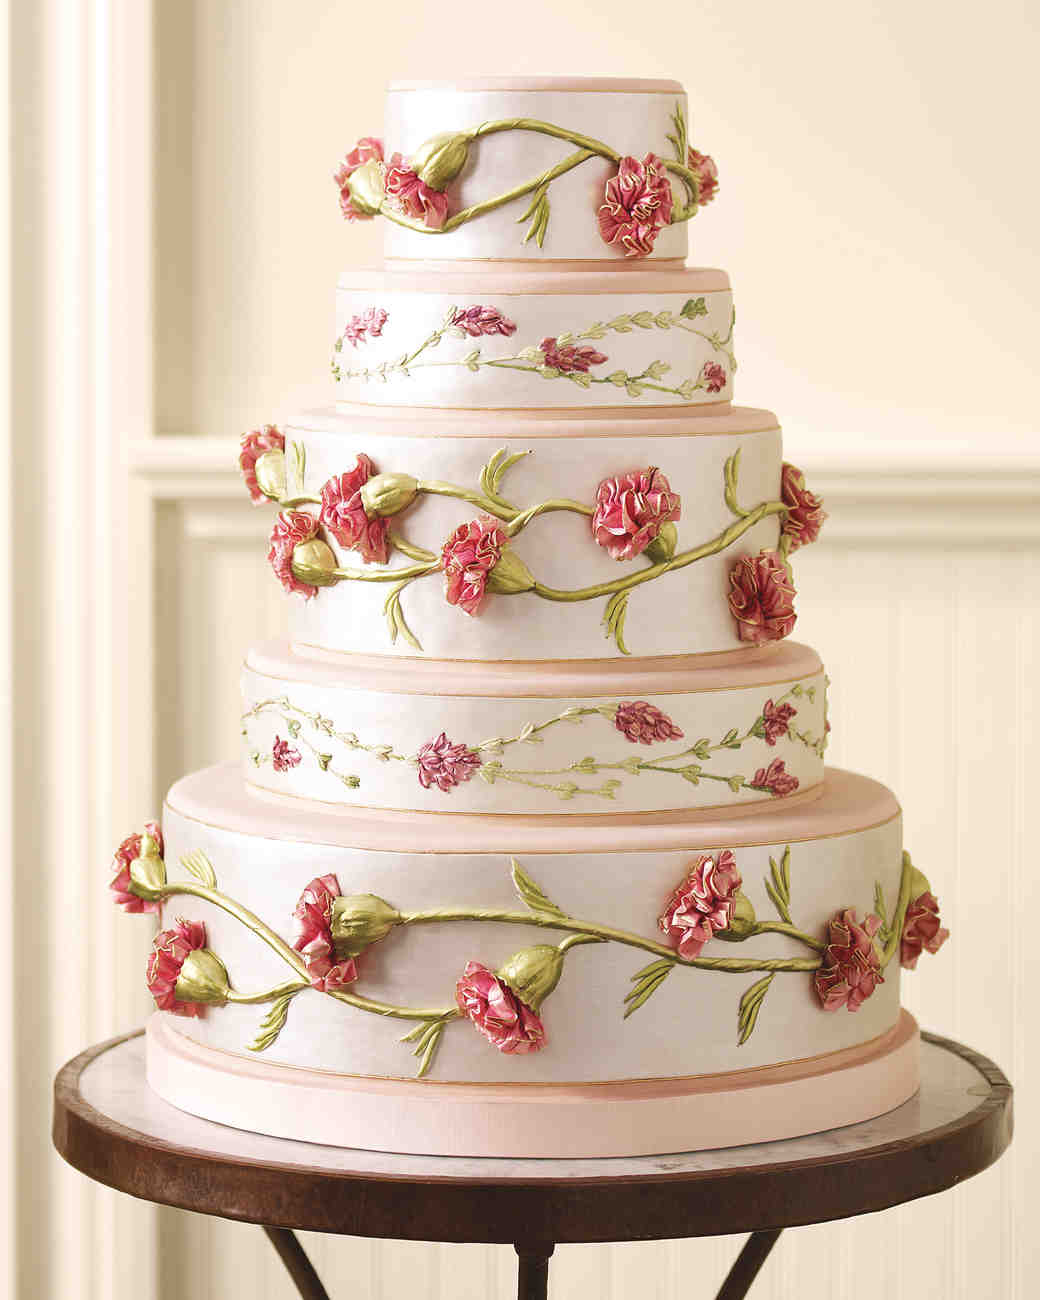 ron ben israel wedding cake recipes 20 years of gorgeous wedding cakes by pastry chef ben 19258